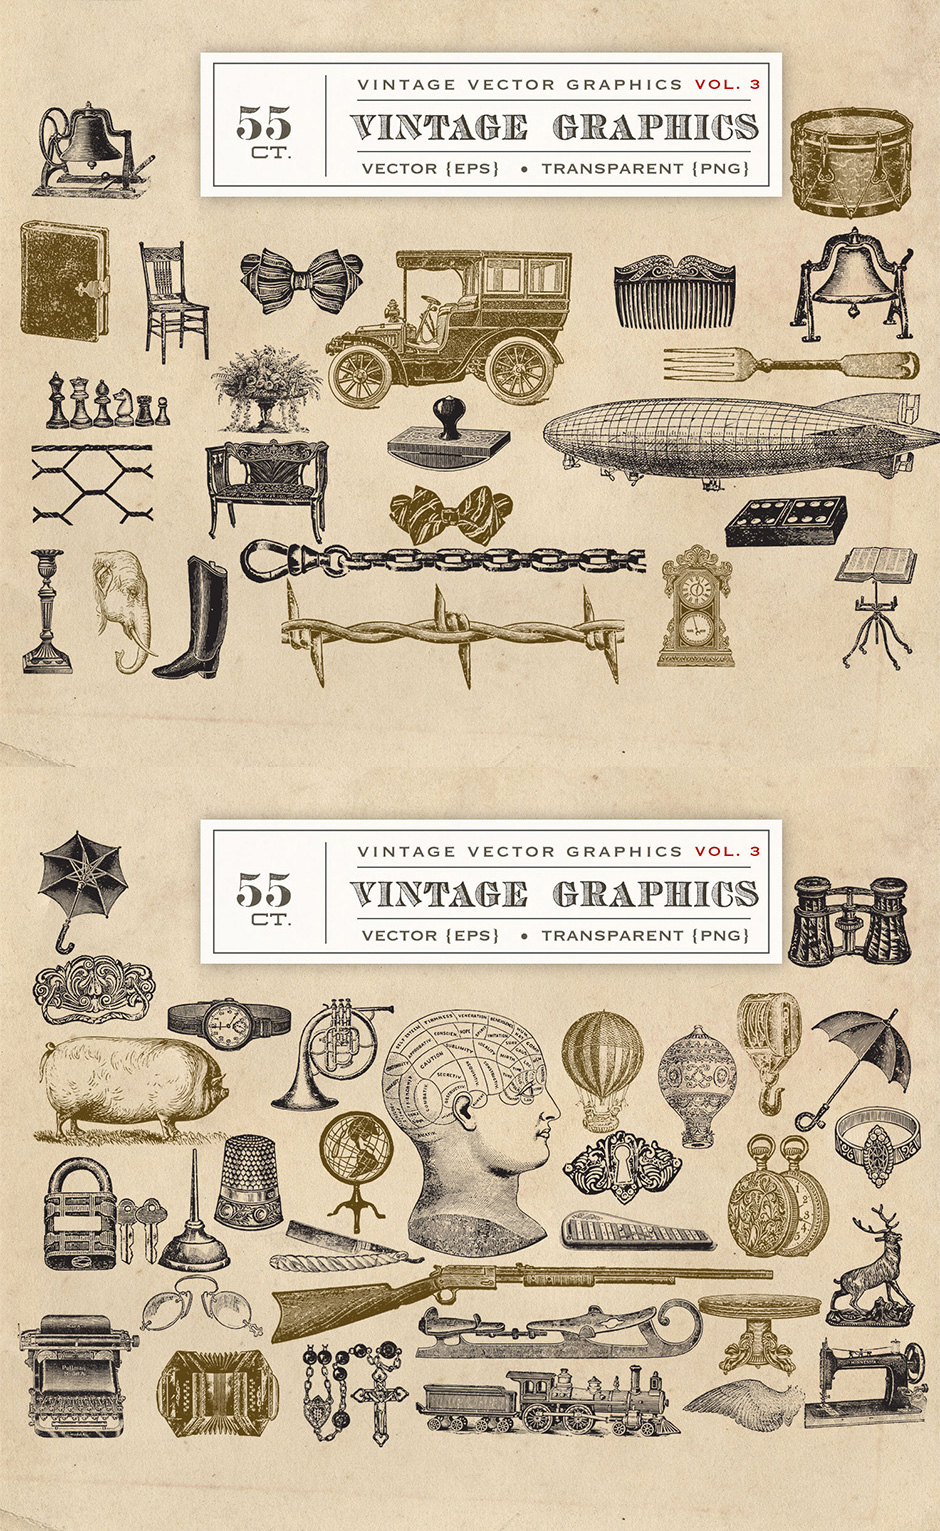 Vector Vintage Graphics Vol. 3